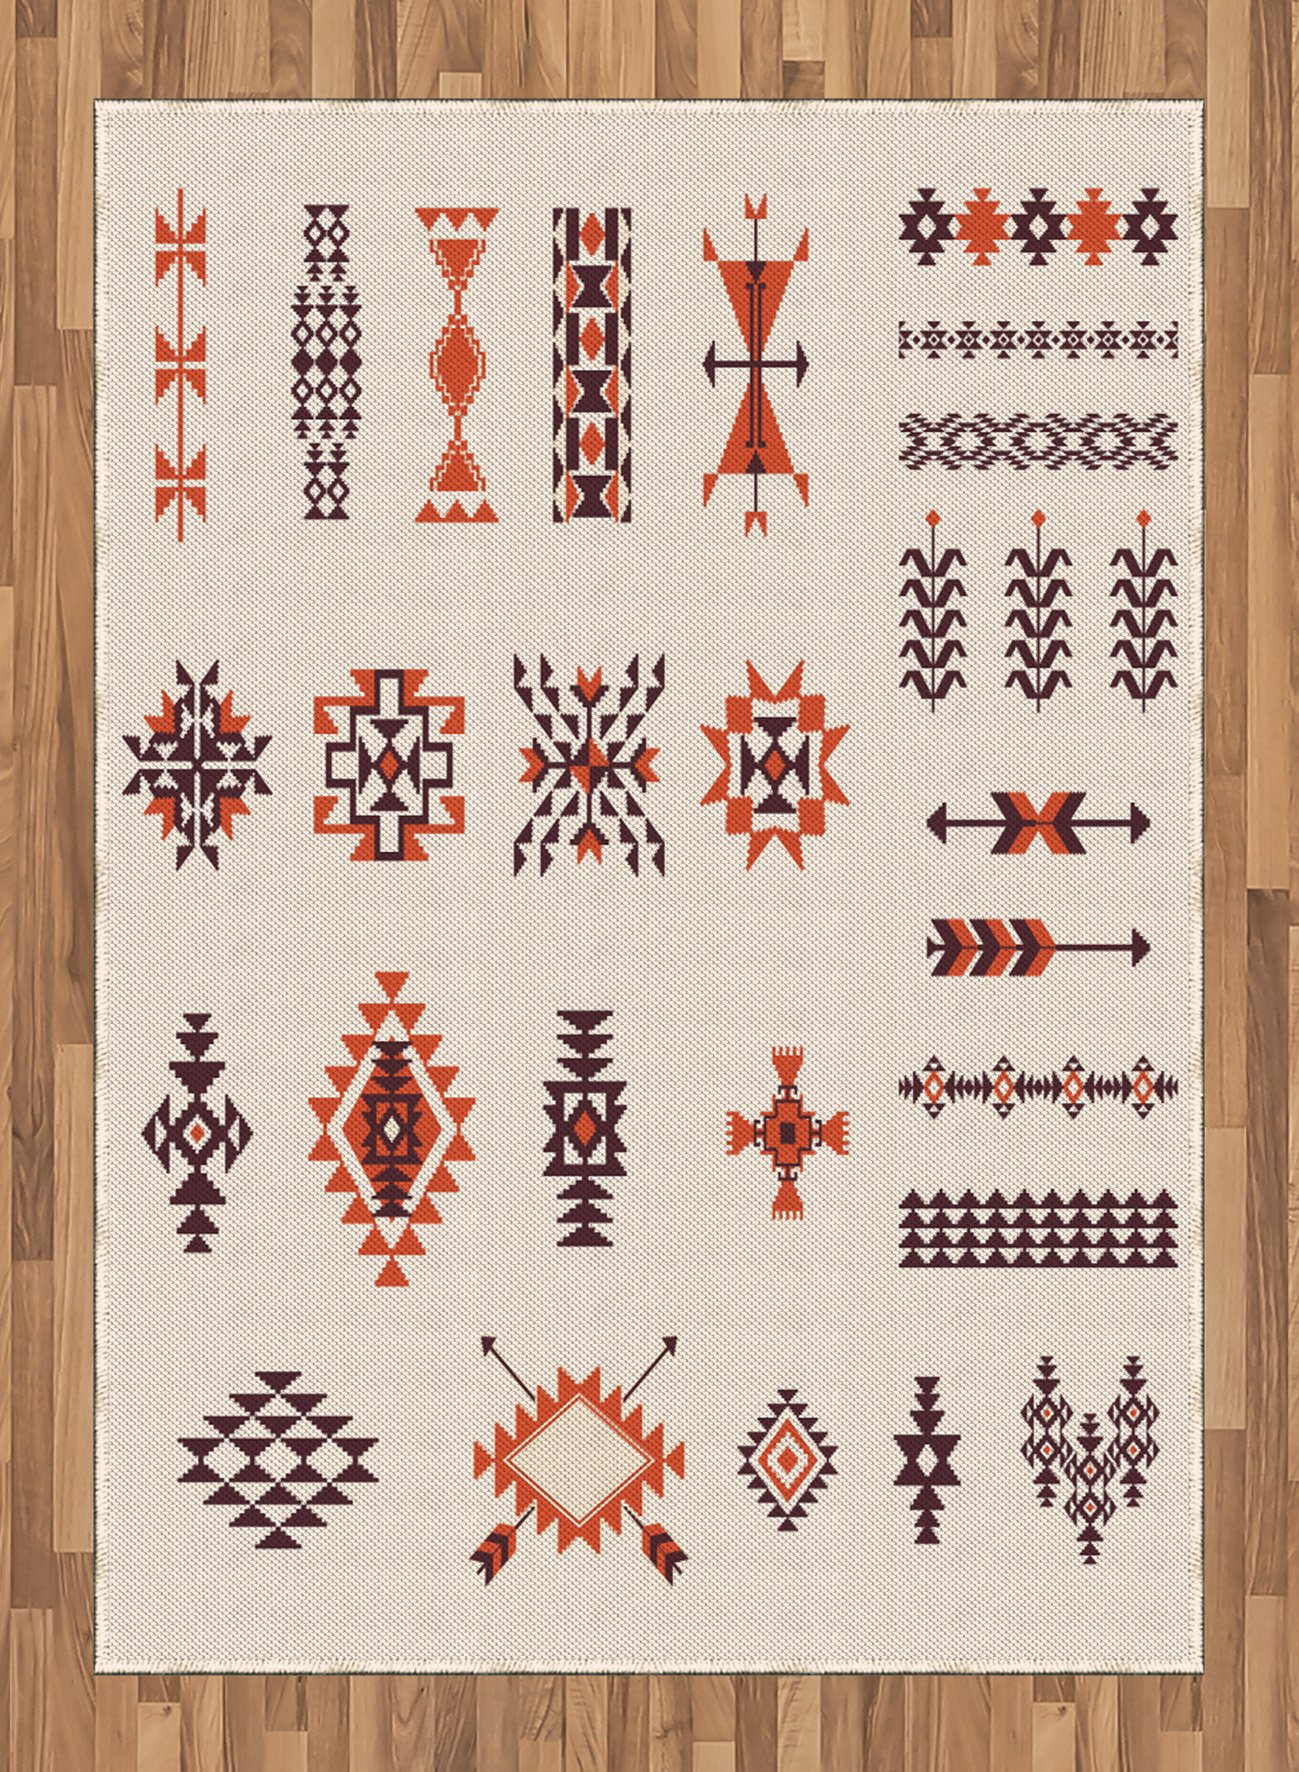 Native American Area Rug by Ambesonne, Illustration of Aztec Pattern Tribal Decor Geometric Print, Flat Woven Accent Rug for Living Room Bedroom Dining Room, 5.2 x 7.5 FT, Orange and Brown